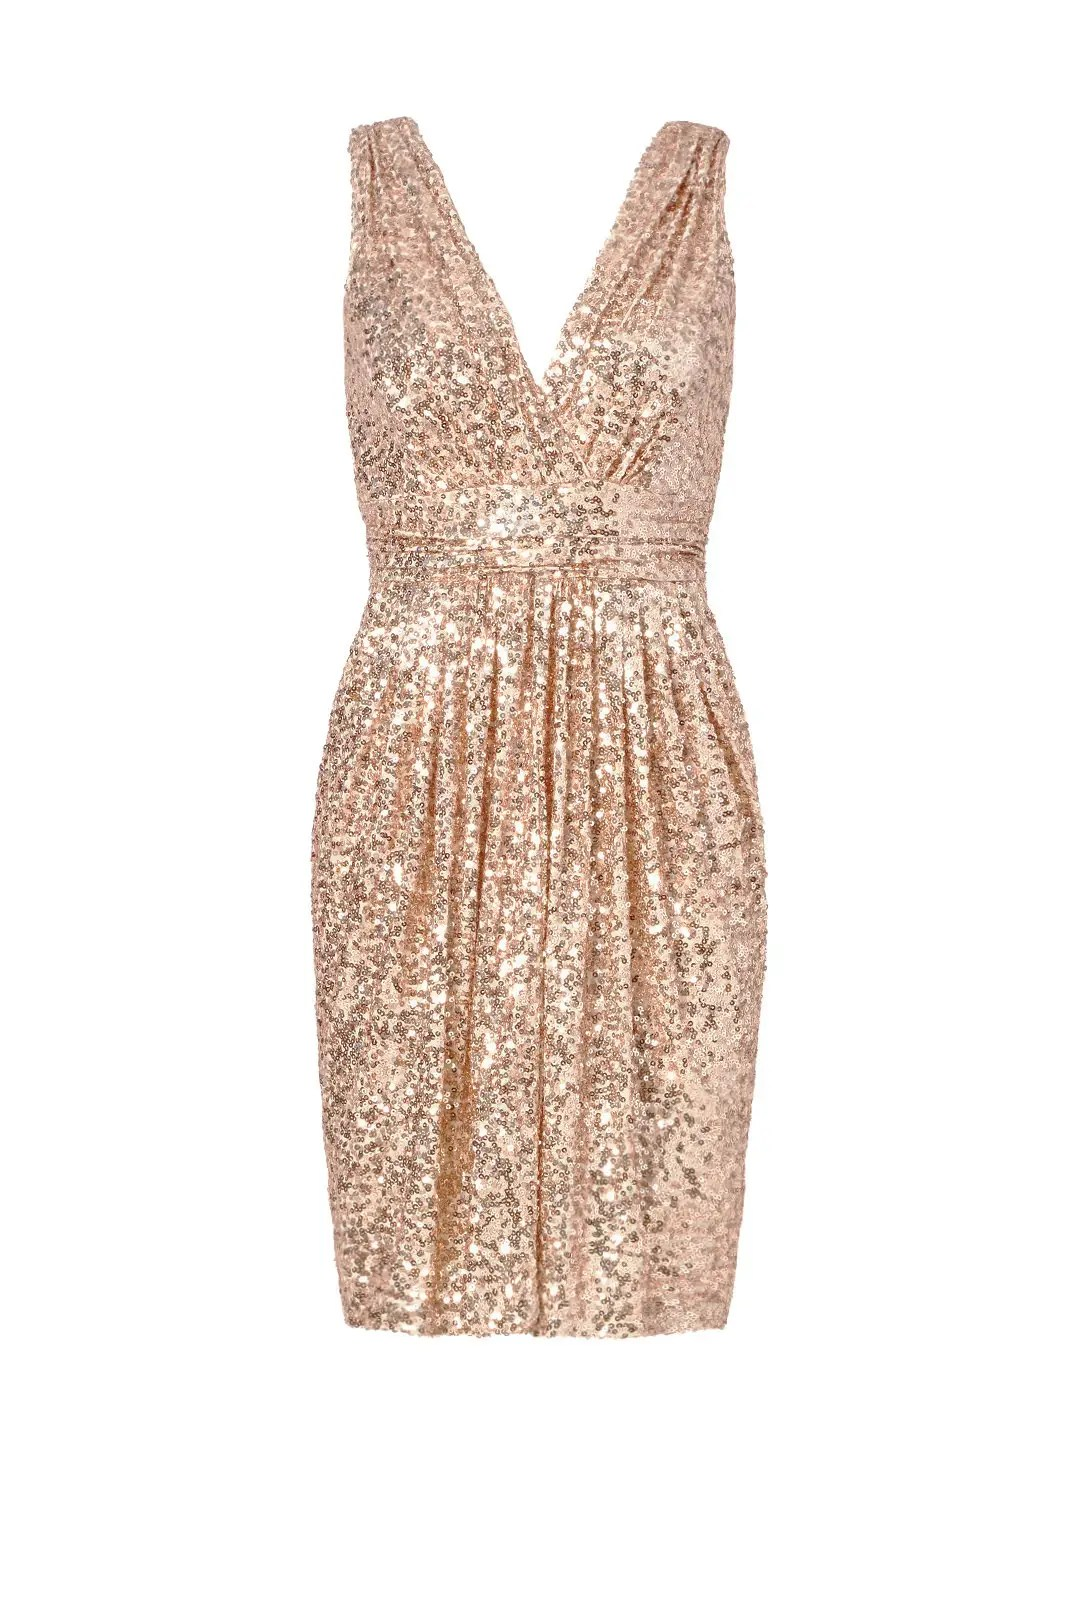 Fifth Avenue Showstopper Dress By Badgley Mischka For 35